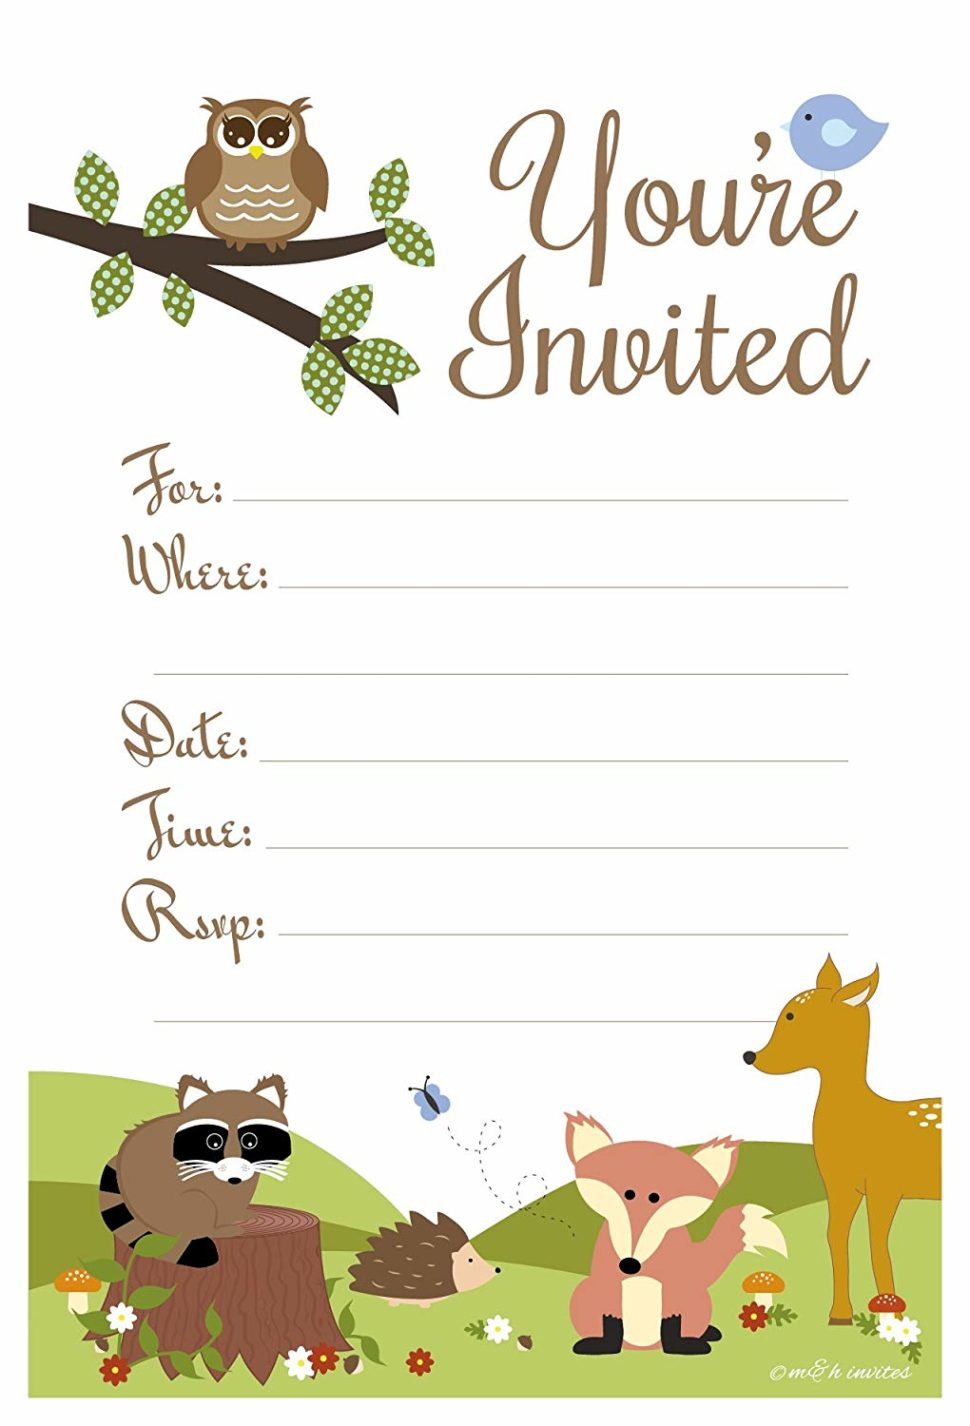 Medium Size of Baby Shower:baby Boy Shower Ideas Free Printable Baby Shower Games Free Baby Shower Ideas Unique Baby Shower Decorations Baby Shower Invitations For Girls Baby Shower Decorations For Boys Baby Girl Themed Showers Baby Girl Themes